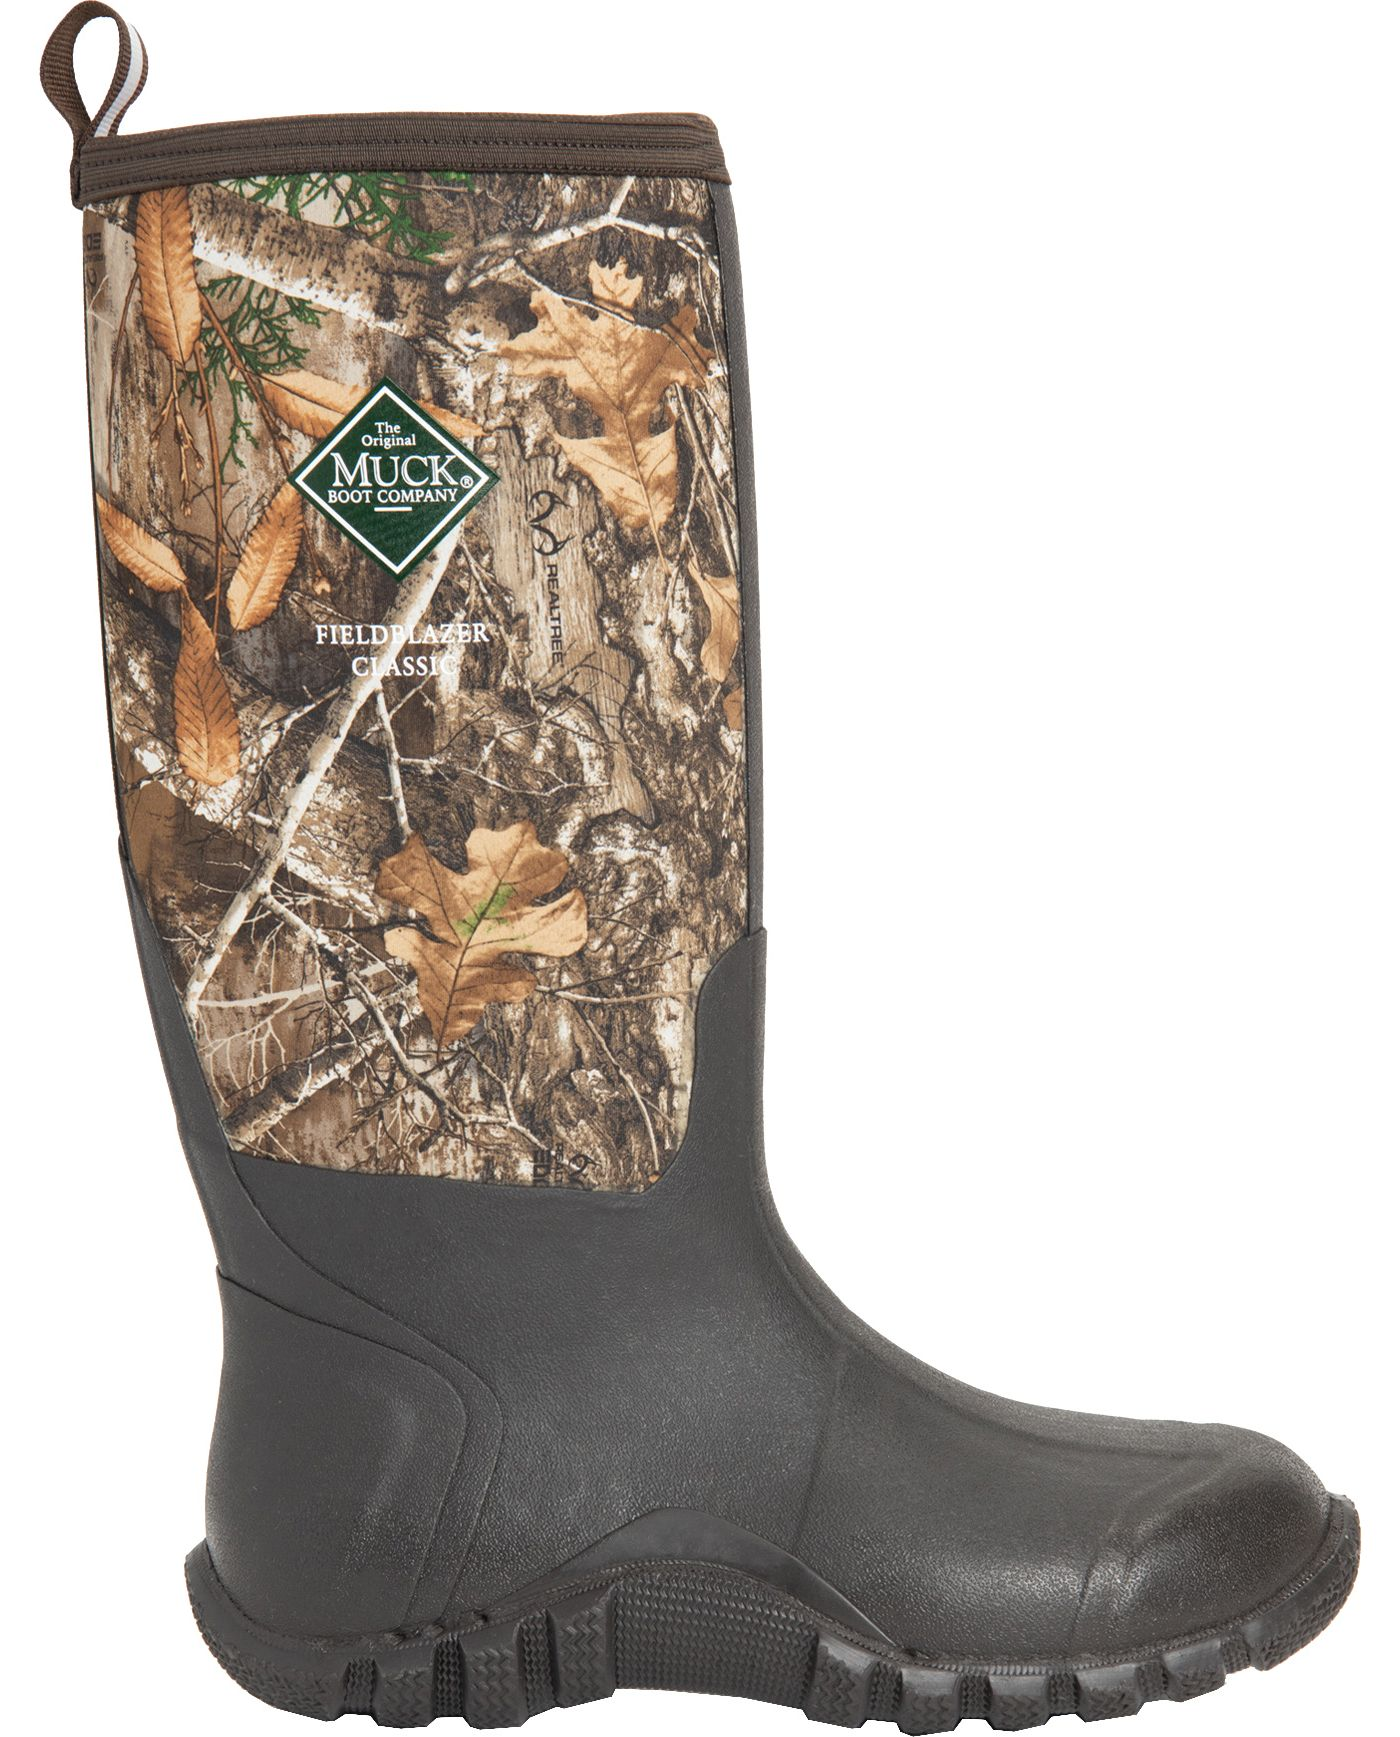 Muck Boots Men's Fieldblazer Classic Fleece Realtree Hunting Boots